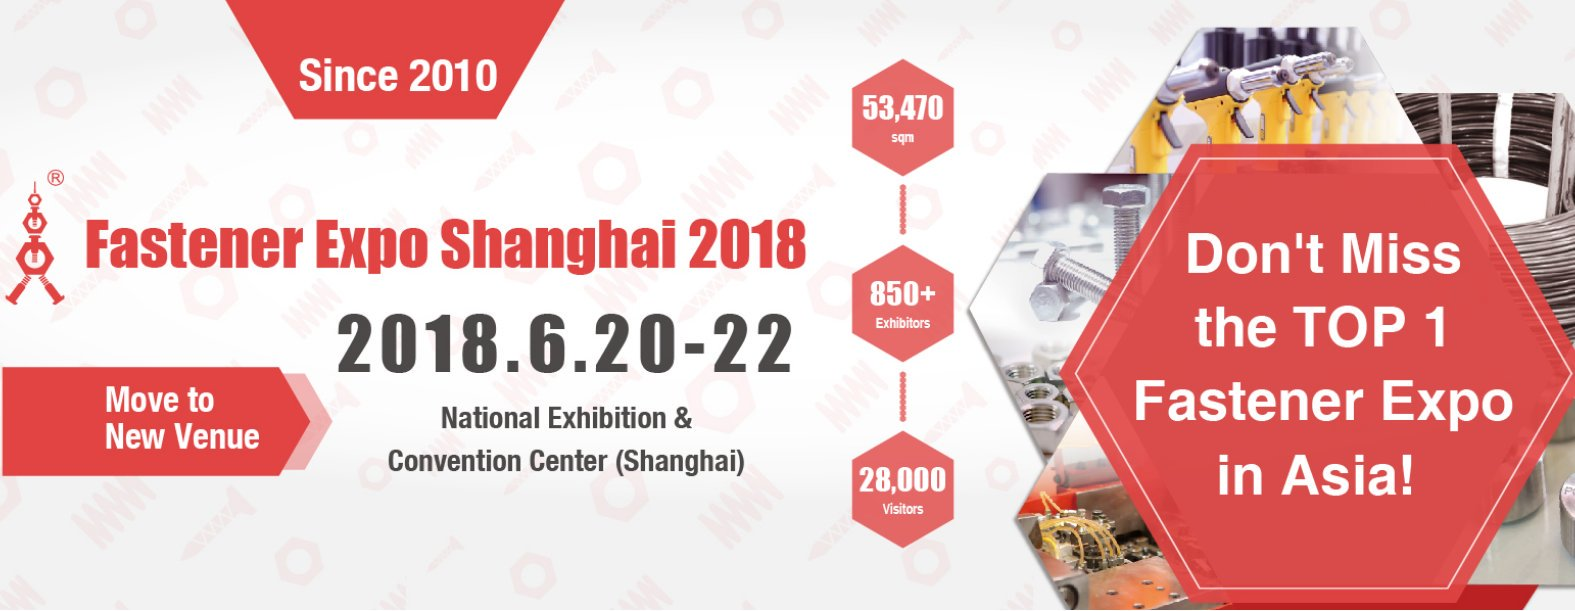 Fastener Expo Shanghai 2018, Asia's Leading Trade Fair for Fastener Industry, will take place on June 20-22